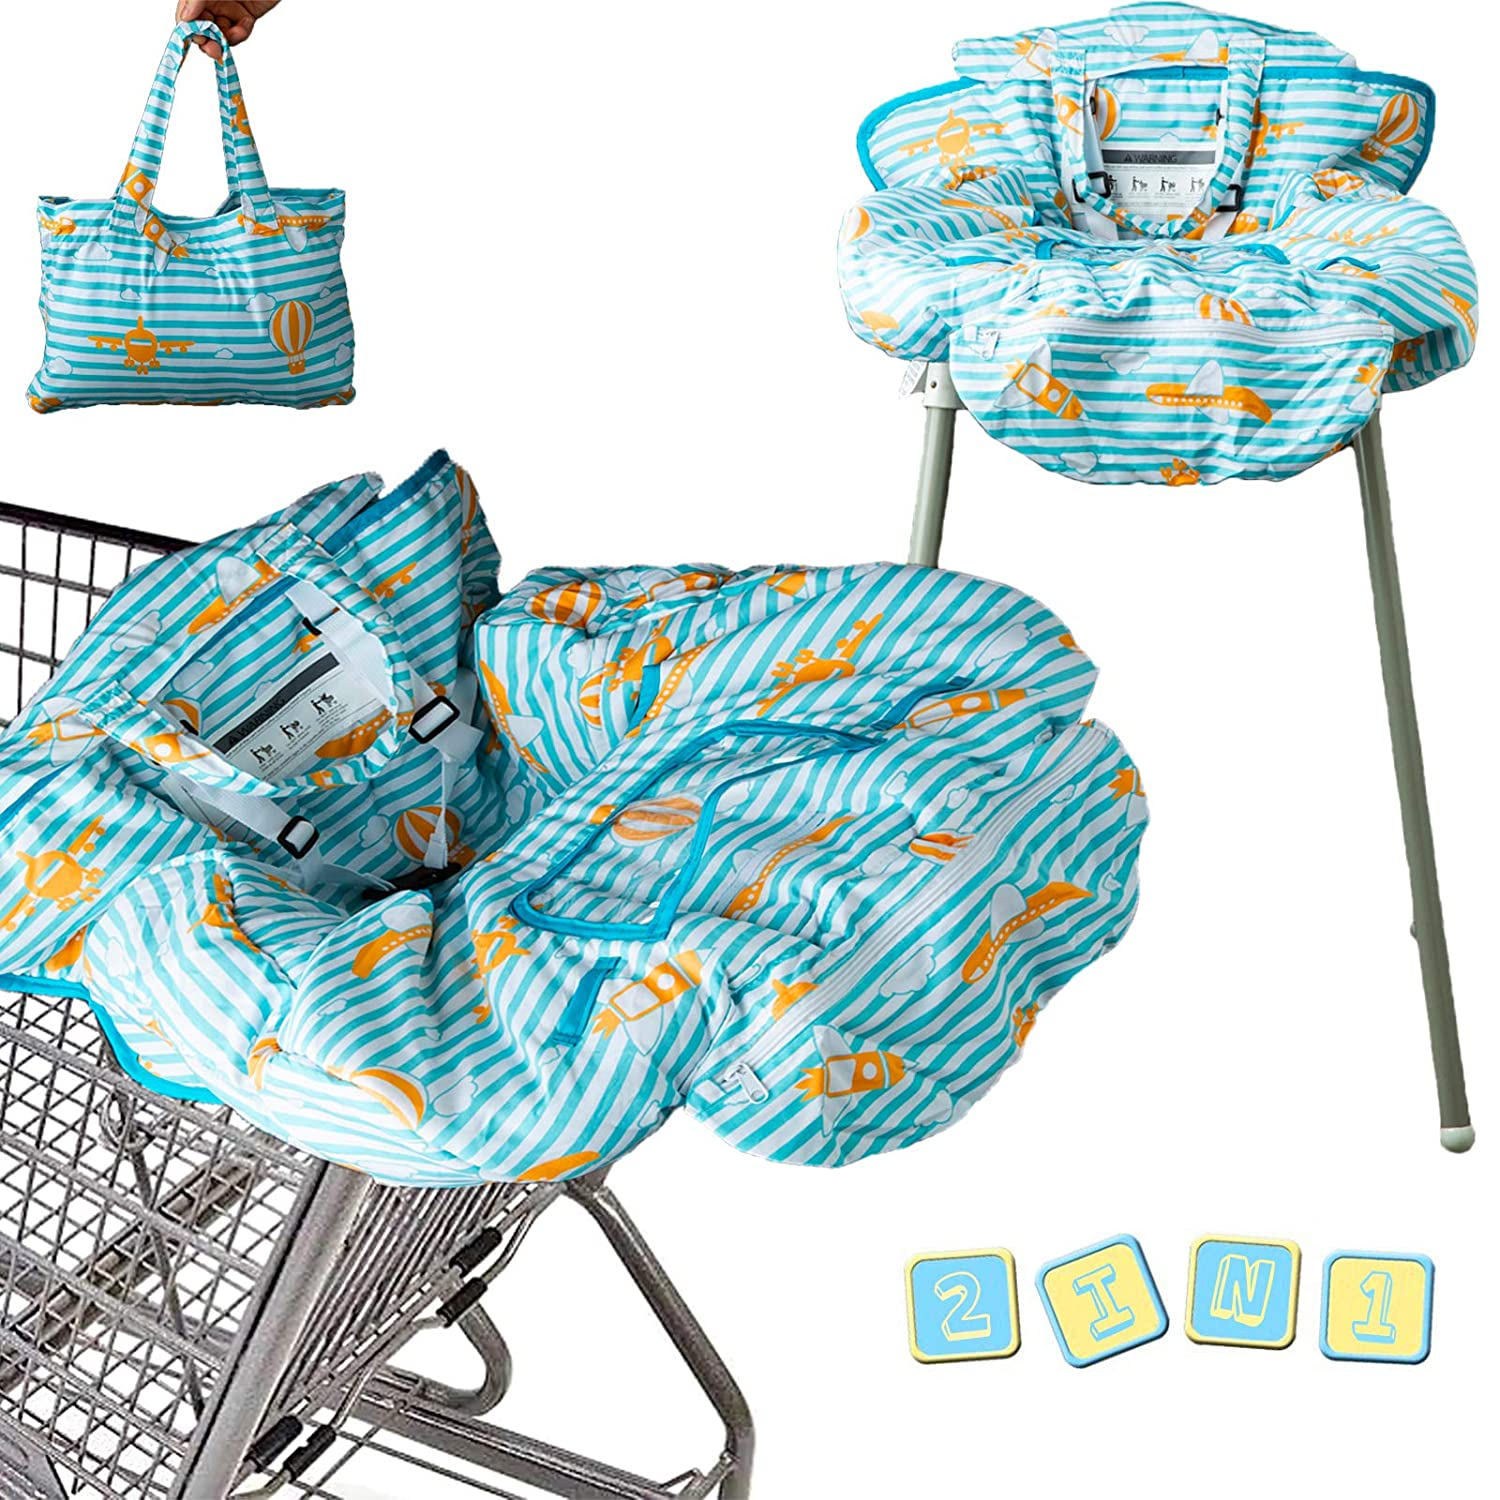 2-in-1 Baby Shopping Cart Cover | Restaurant High Chair Cover | 360 Full Protection | Machine Washable | Universal Fit | for Infant, Toddler, Girls and Boys